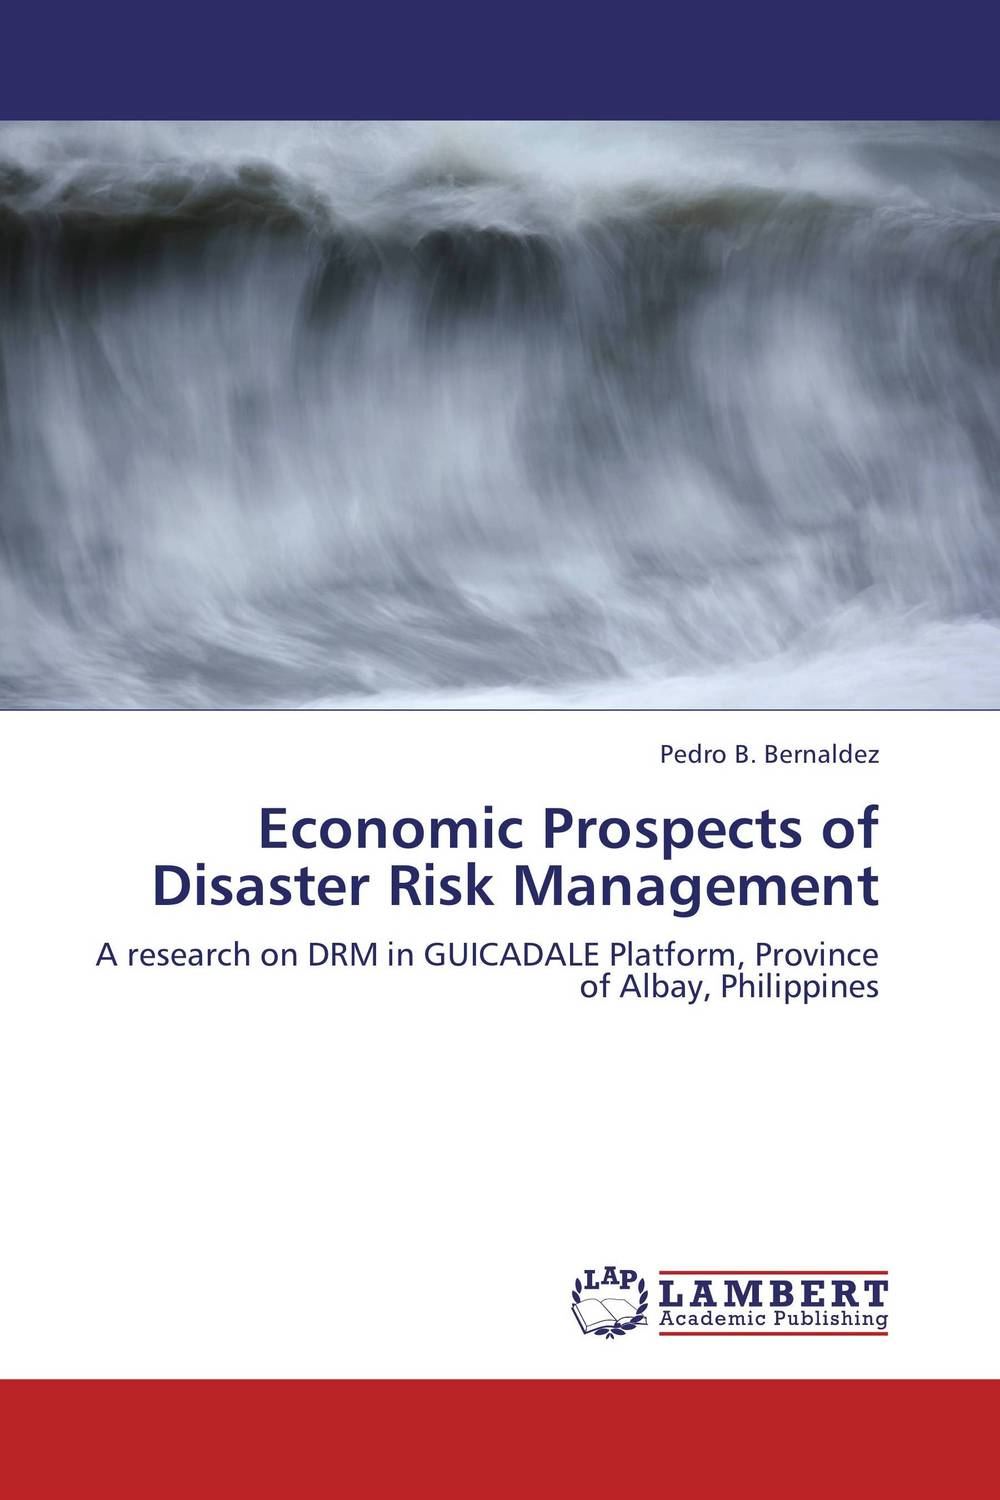 Economic Prospects of Disaster Risk Management mustapha bangura a concise guide to local economic development